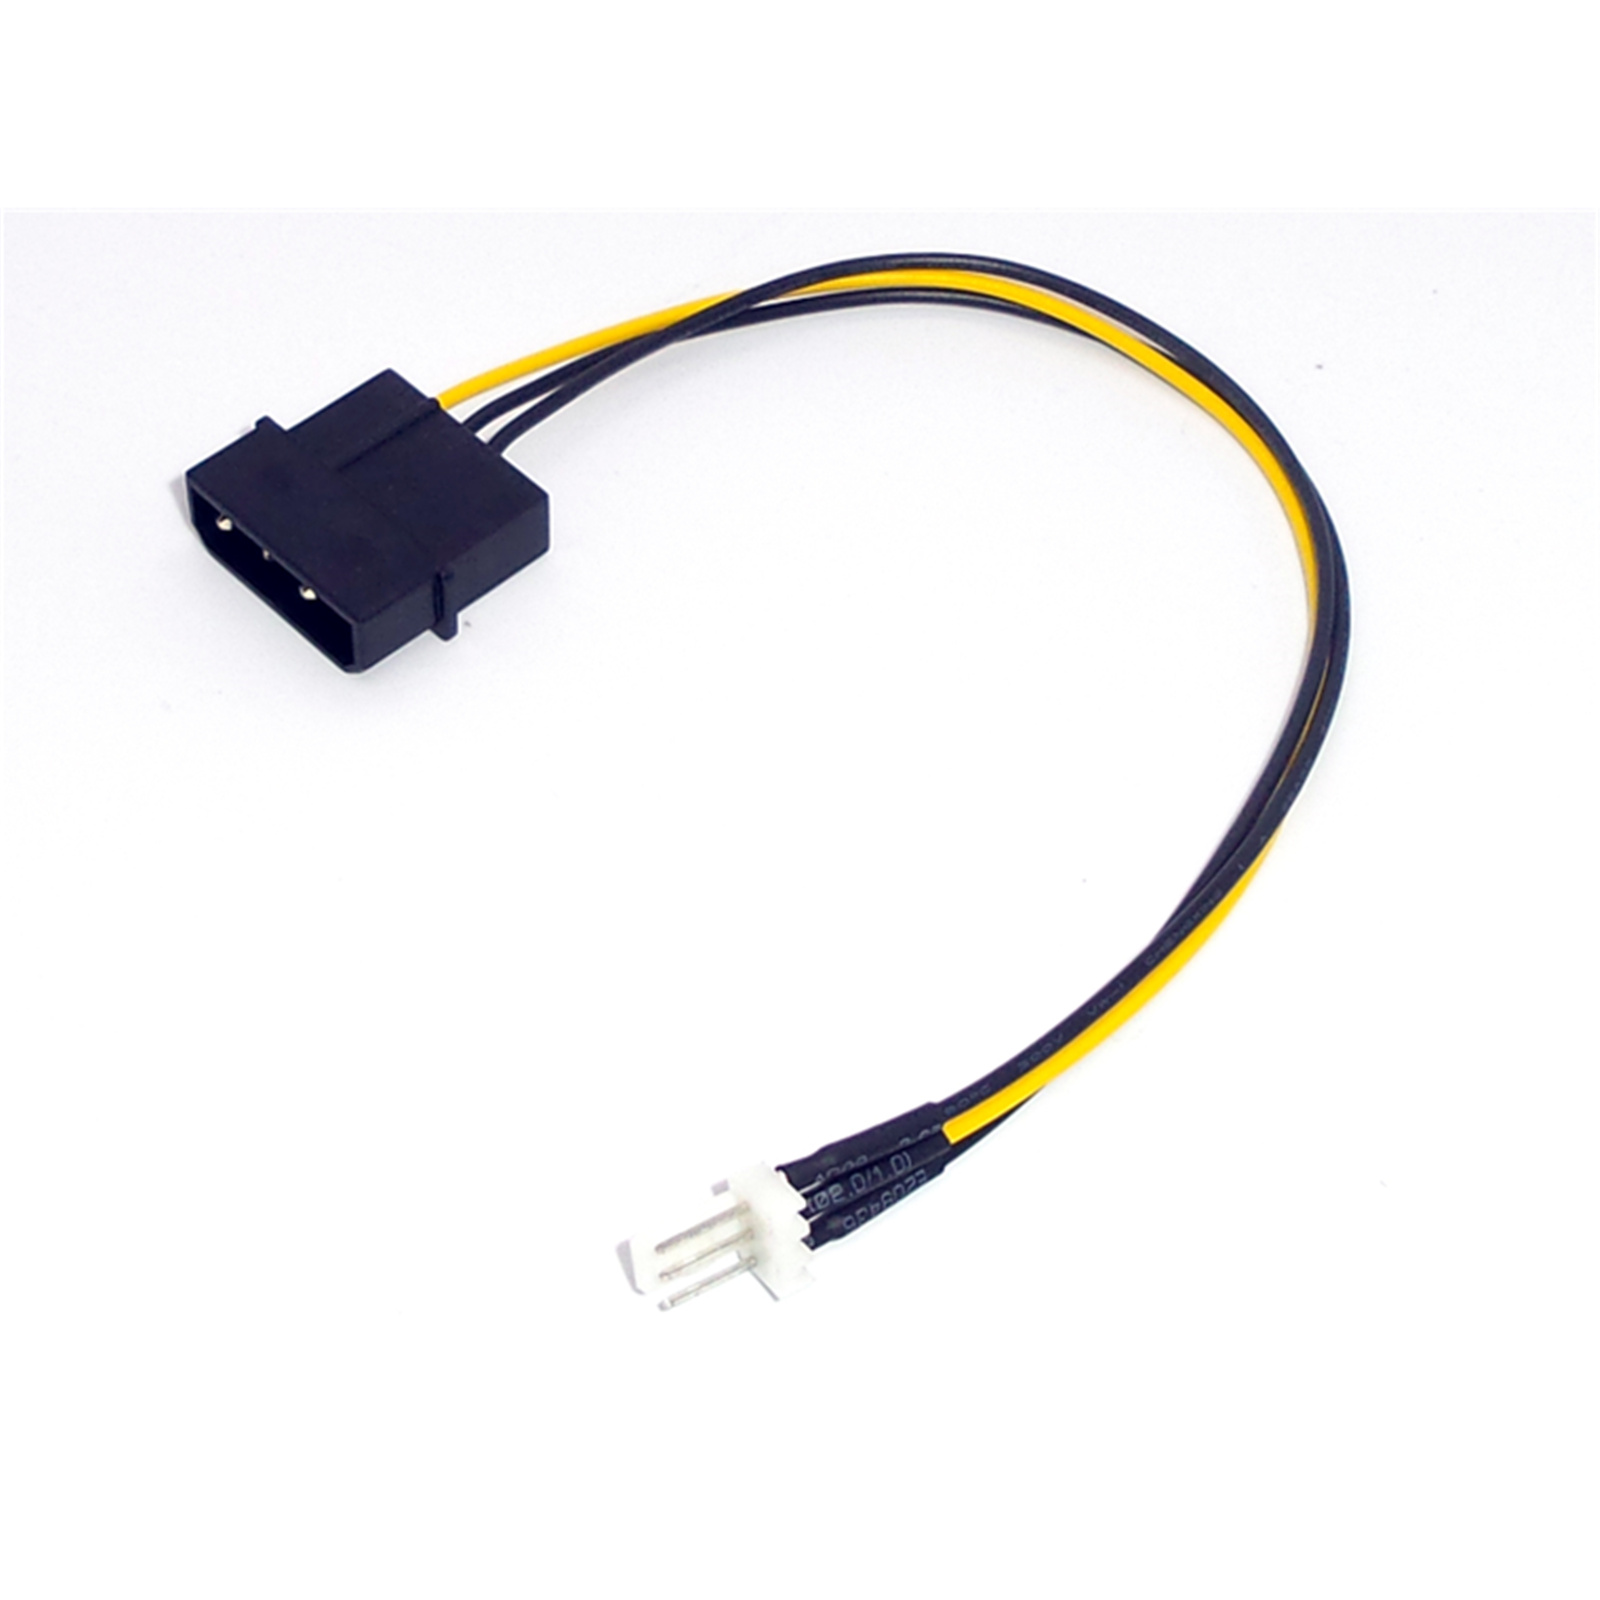 Buy The Oem 1 X Molex D Type 4 Pin Male To Fan 3 Electrical Wiring Connector Types Convert Cable 18cm